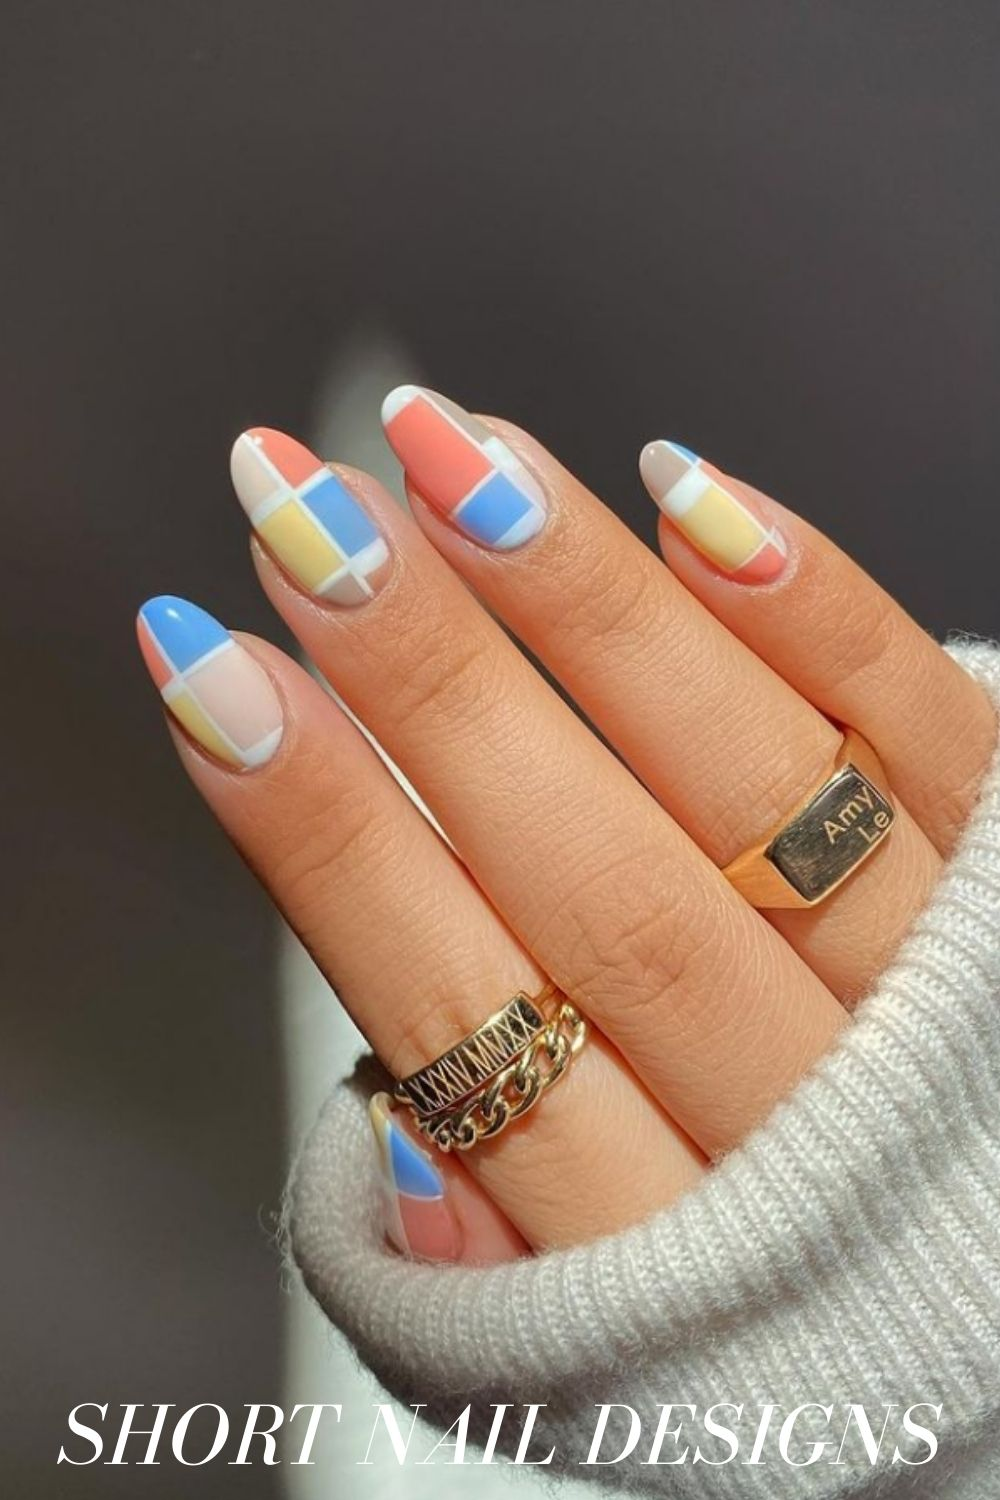 Cute Short Acrylic Nails Designs you'll Want to Try